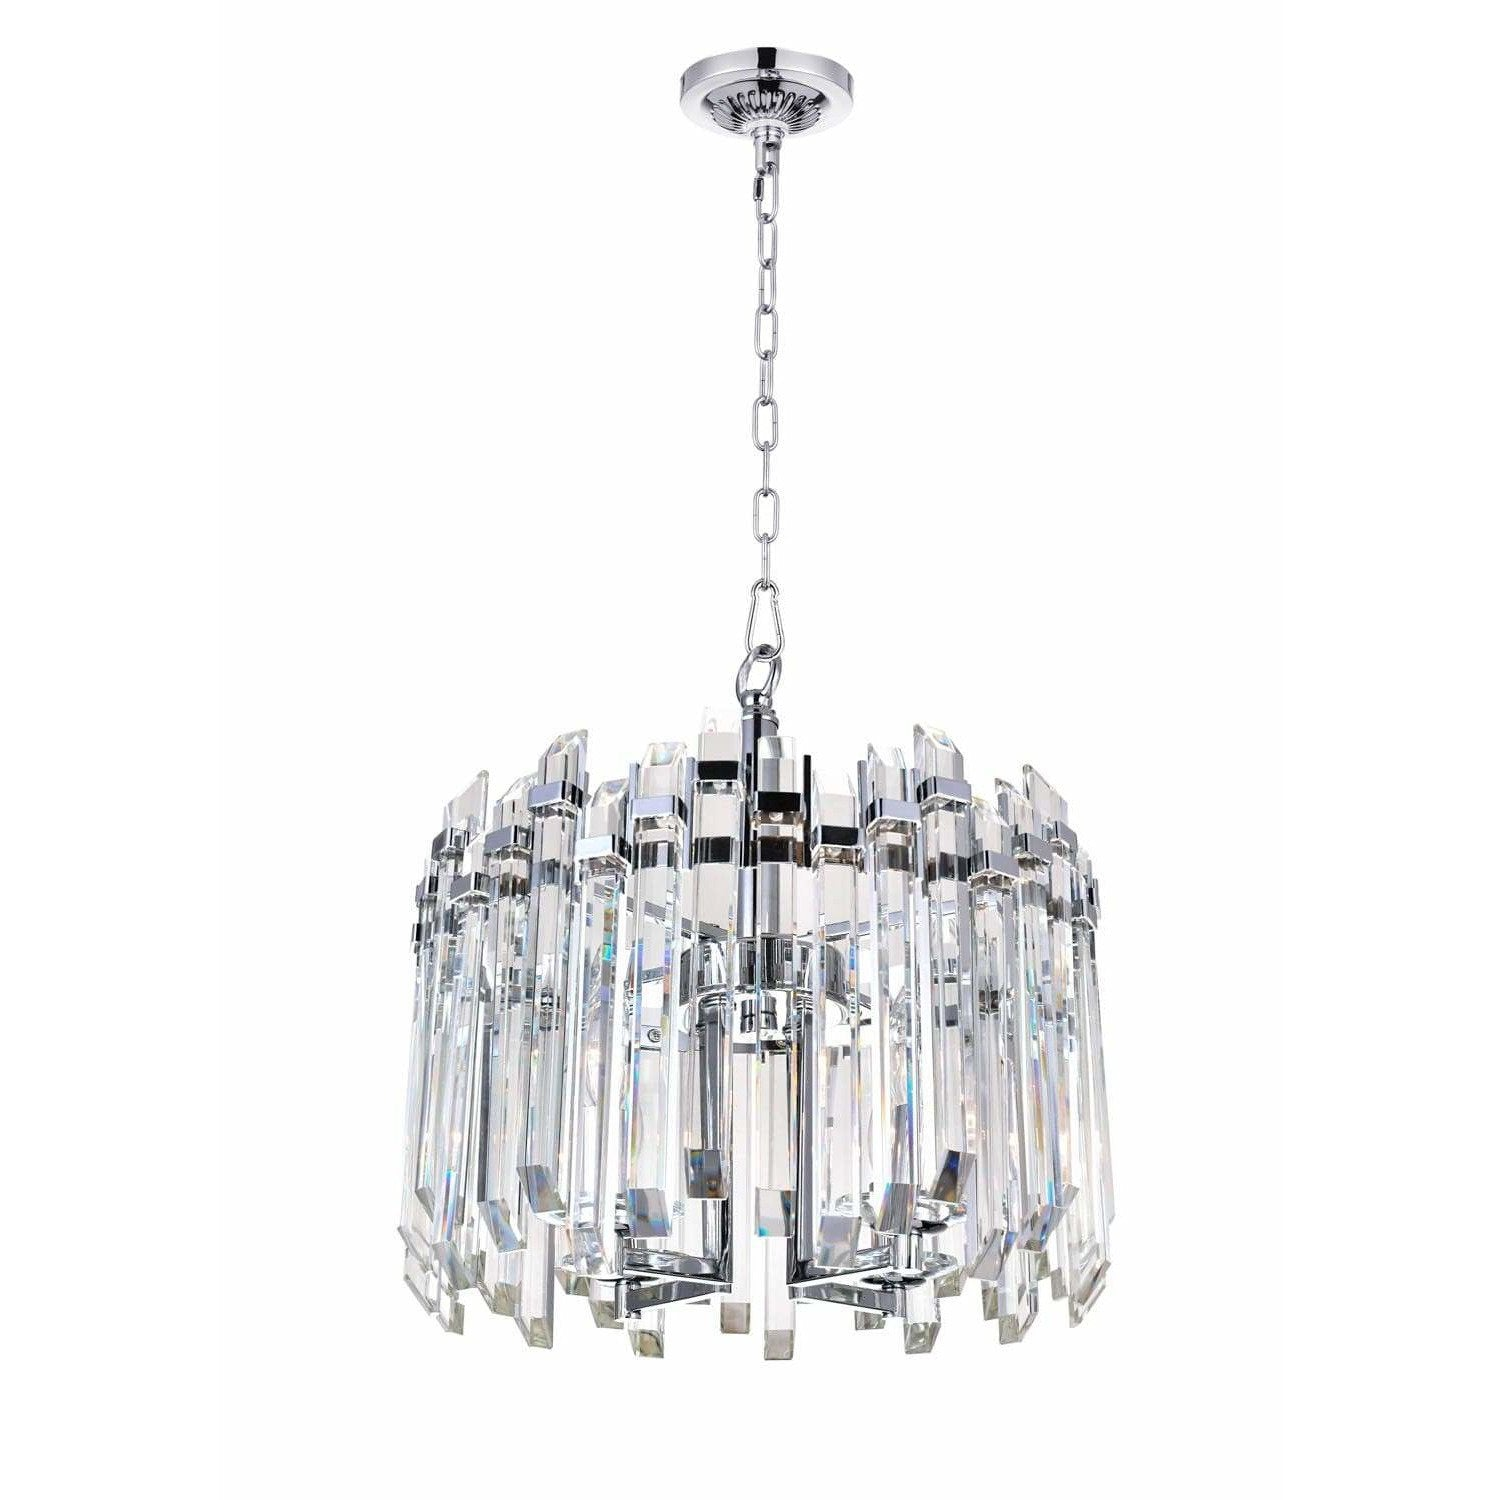 CWI Lighting Chandeliers Chrome / K9 Clear Henrietta 4 Light Chandelier with Chrome Finish by CWI Lighting 1065P16-4-601